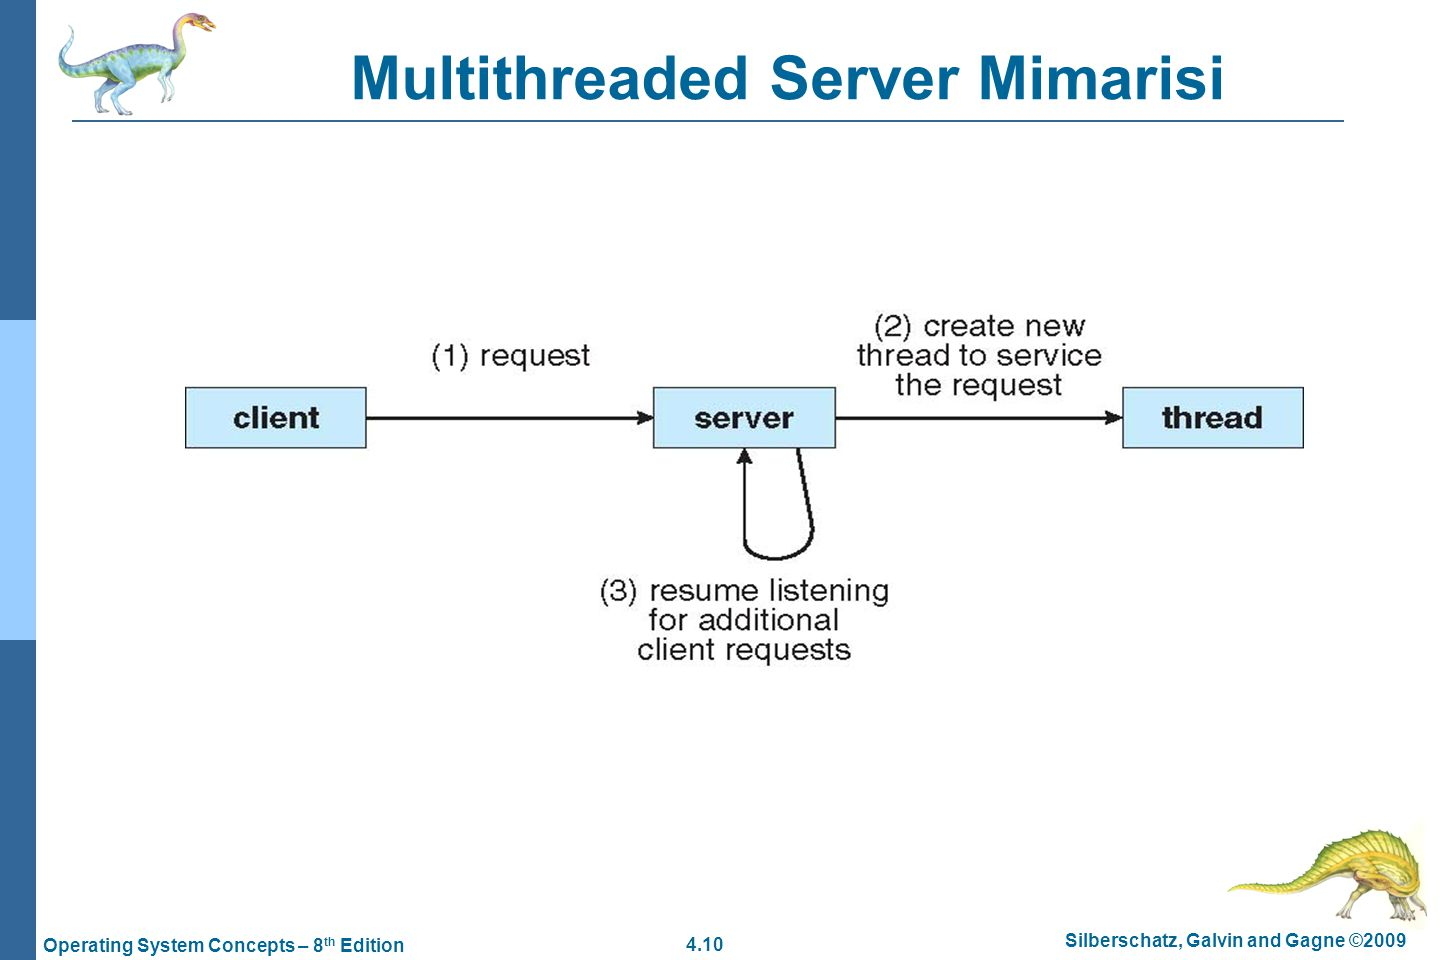 Multithreaded Server Mimarisi